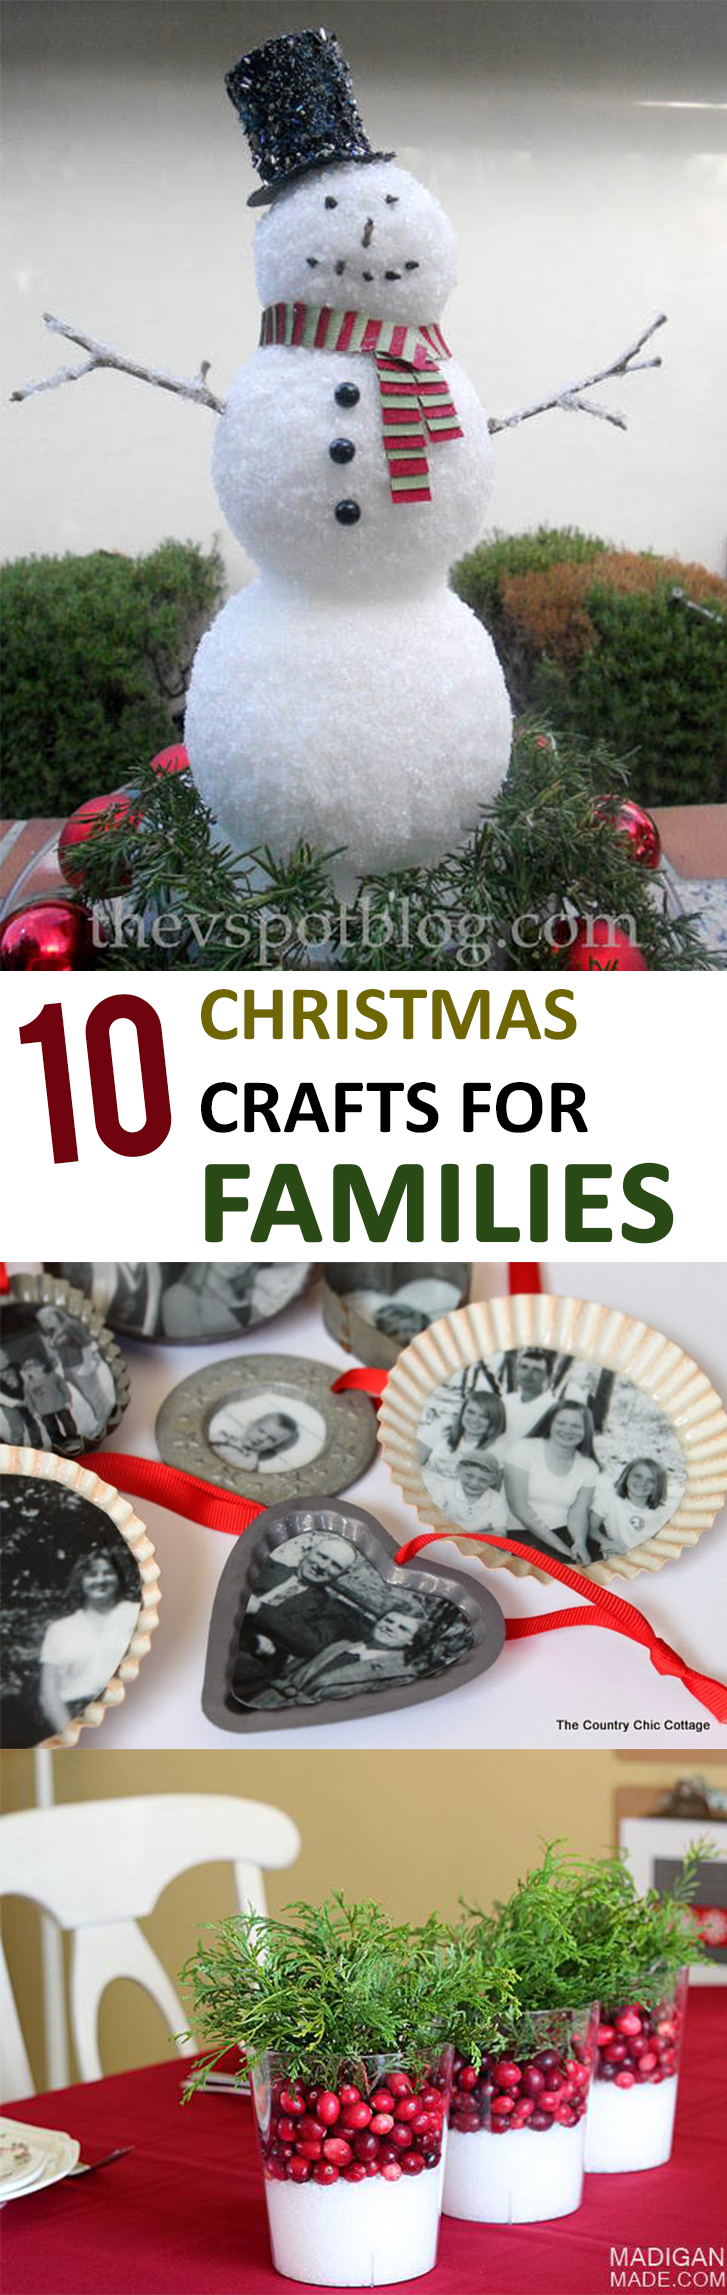 Christmas Crafts, Crafts For Families, Family Crafts, Popular Pin, Holiday Crafts, Crafts for Kids, Family Activites, Family Holiday Activities.